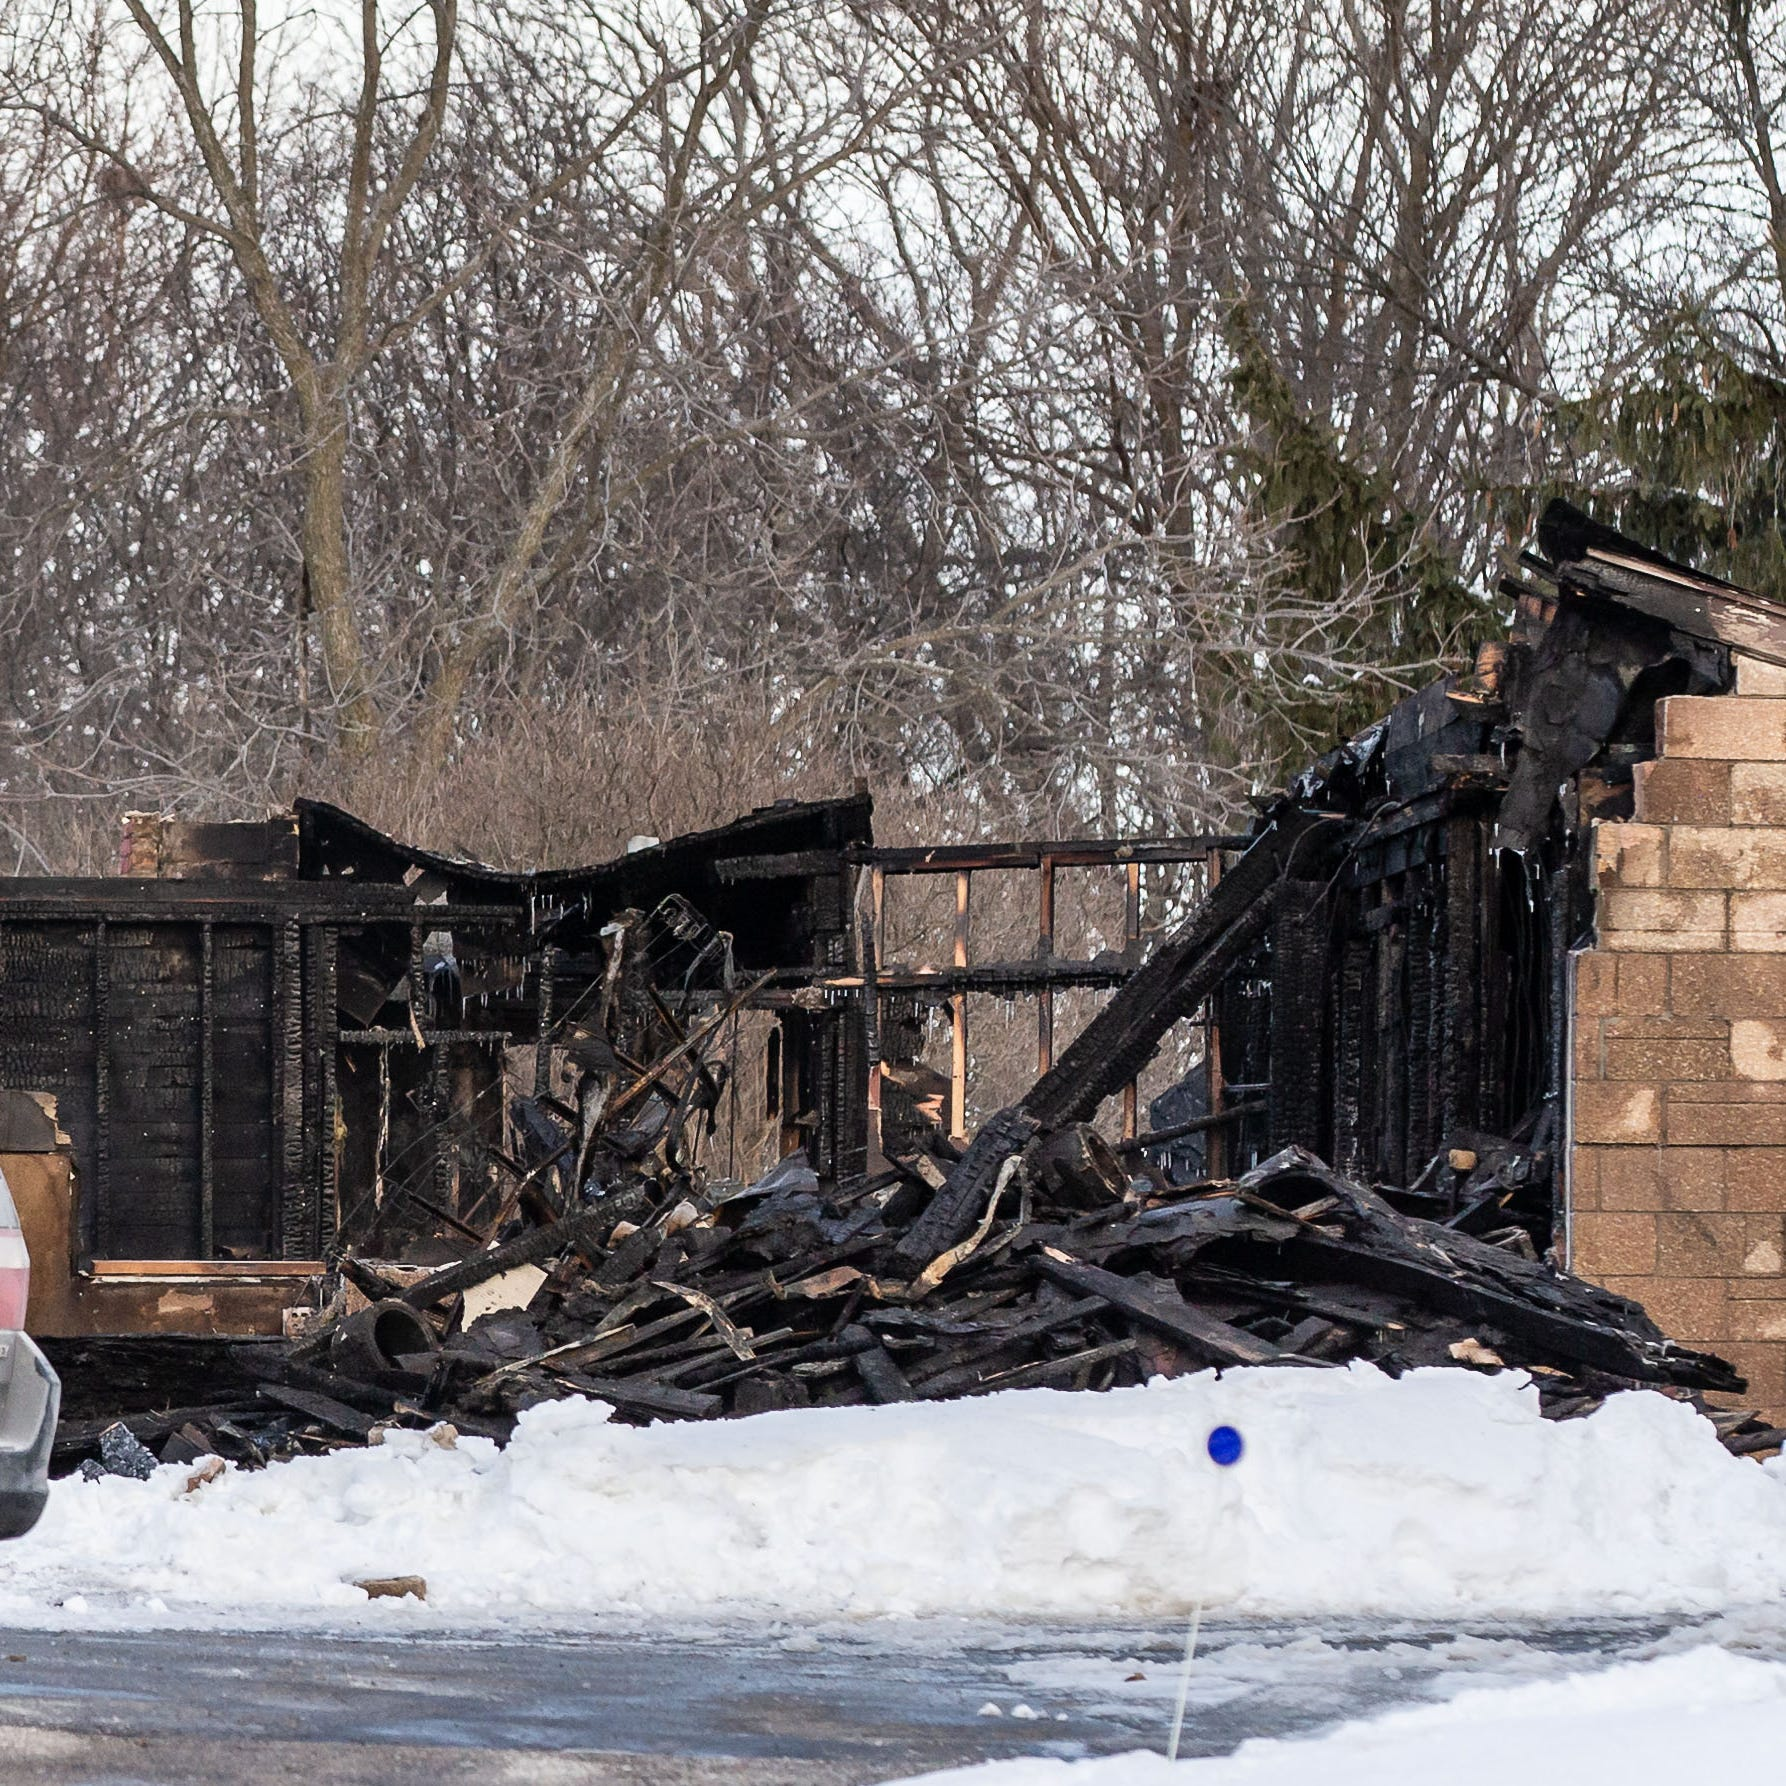 Three found dead in early morning house fire in Waukesha